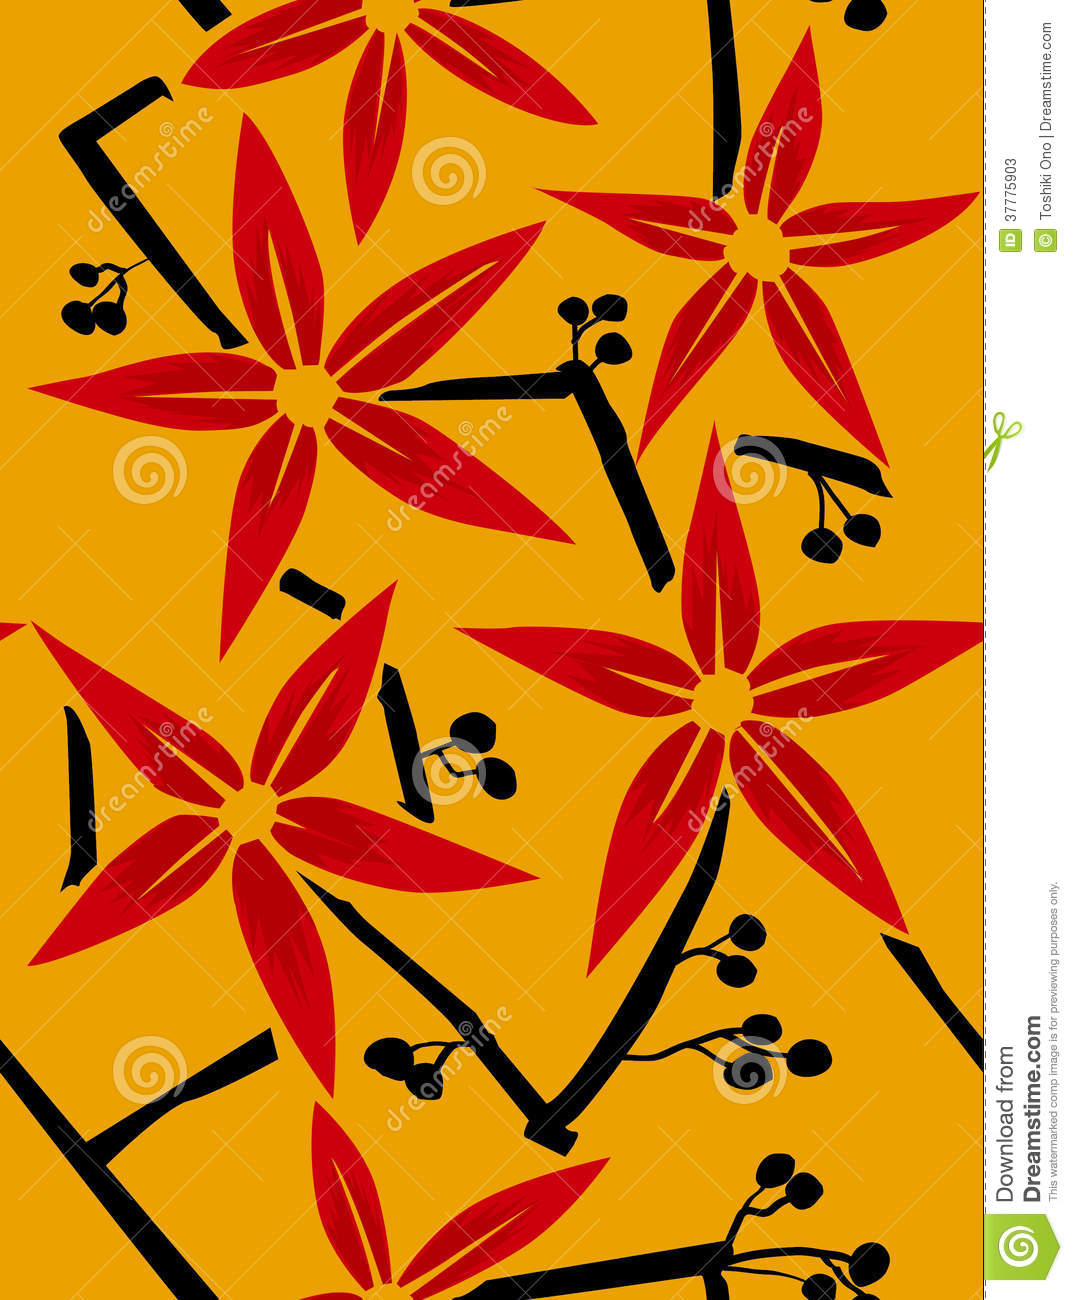 Japanese plant pattern stock vector  Illustration of simple - 37775903